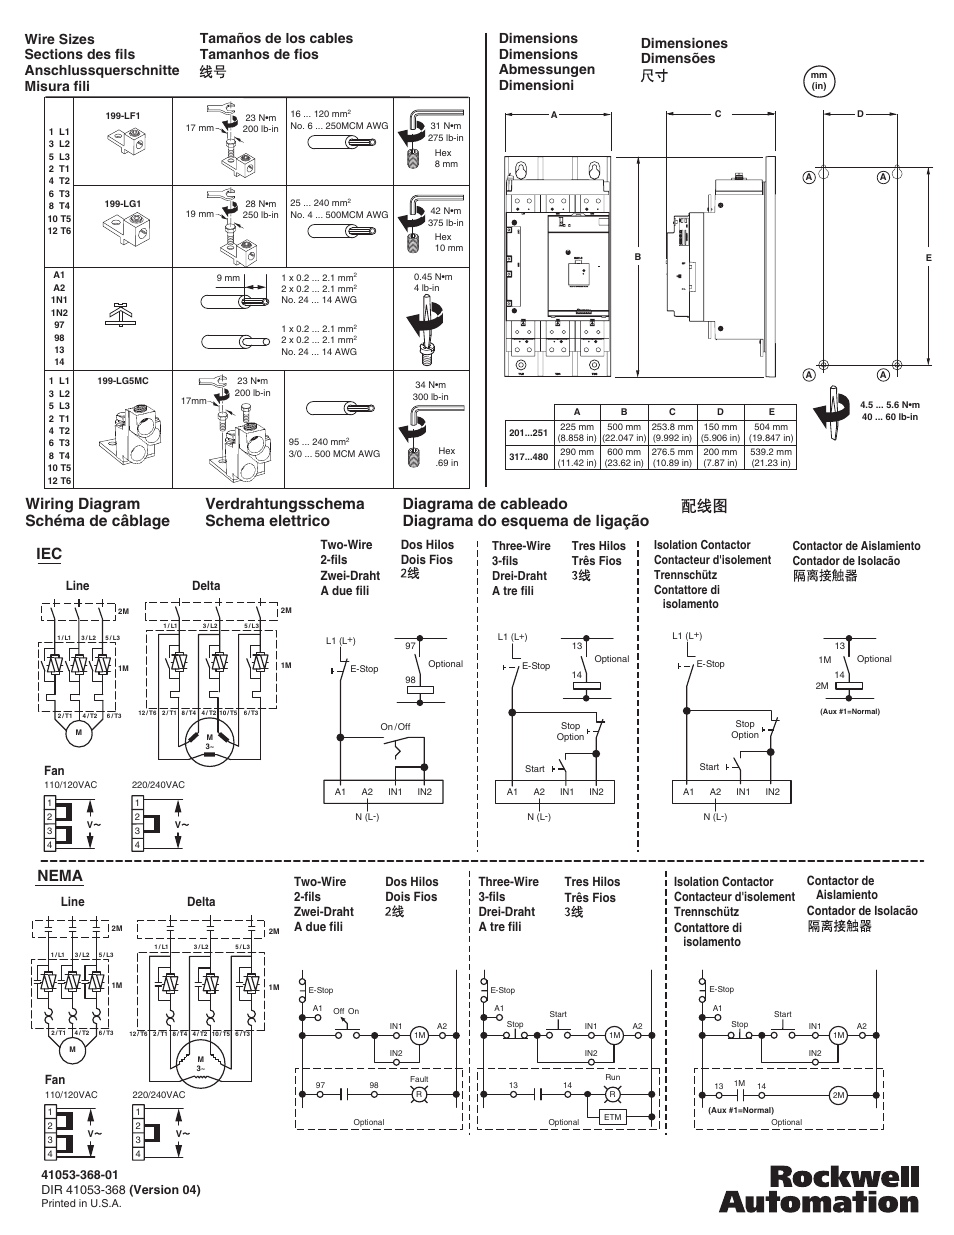 9v Output Scwitching Power Supply furthermore P 0996b43f8037d40b in addition 2 Gang 3 Phase Wiring Diagram in addition 186642 W124 93 300d 2 5 Boost Problems I Too Am Stumped furthermore Wiring Diagram Whirlpool Duet Dryer. on l3 wiring diagram